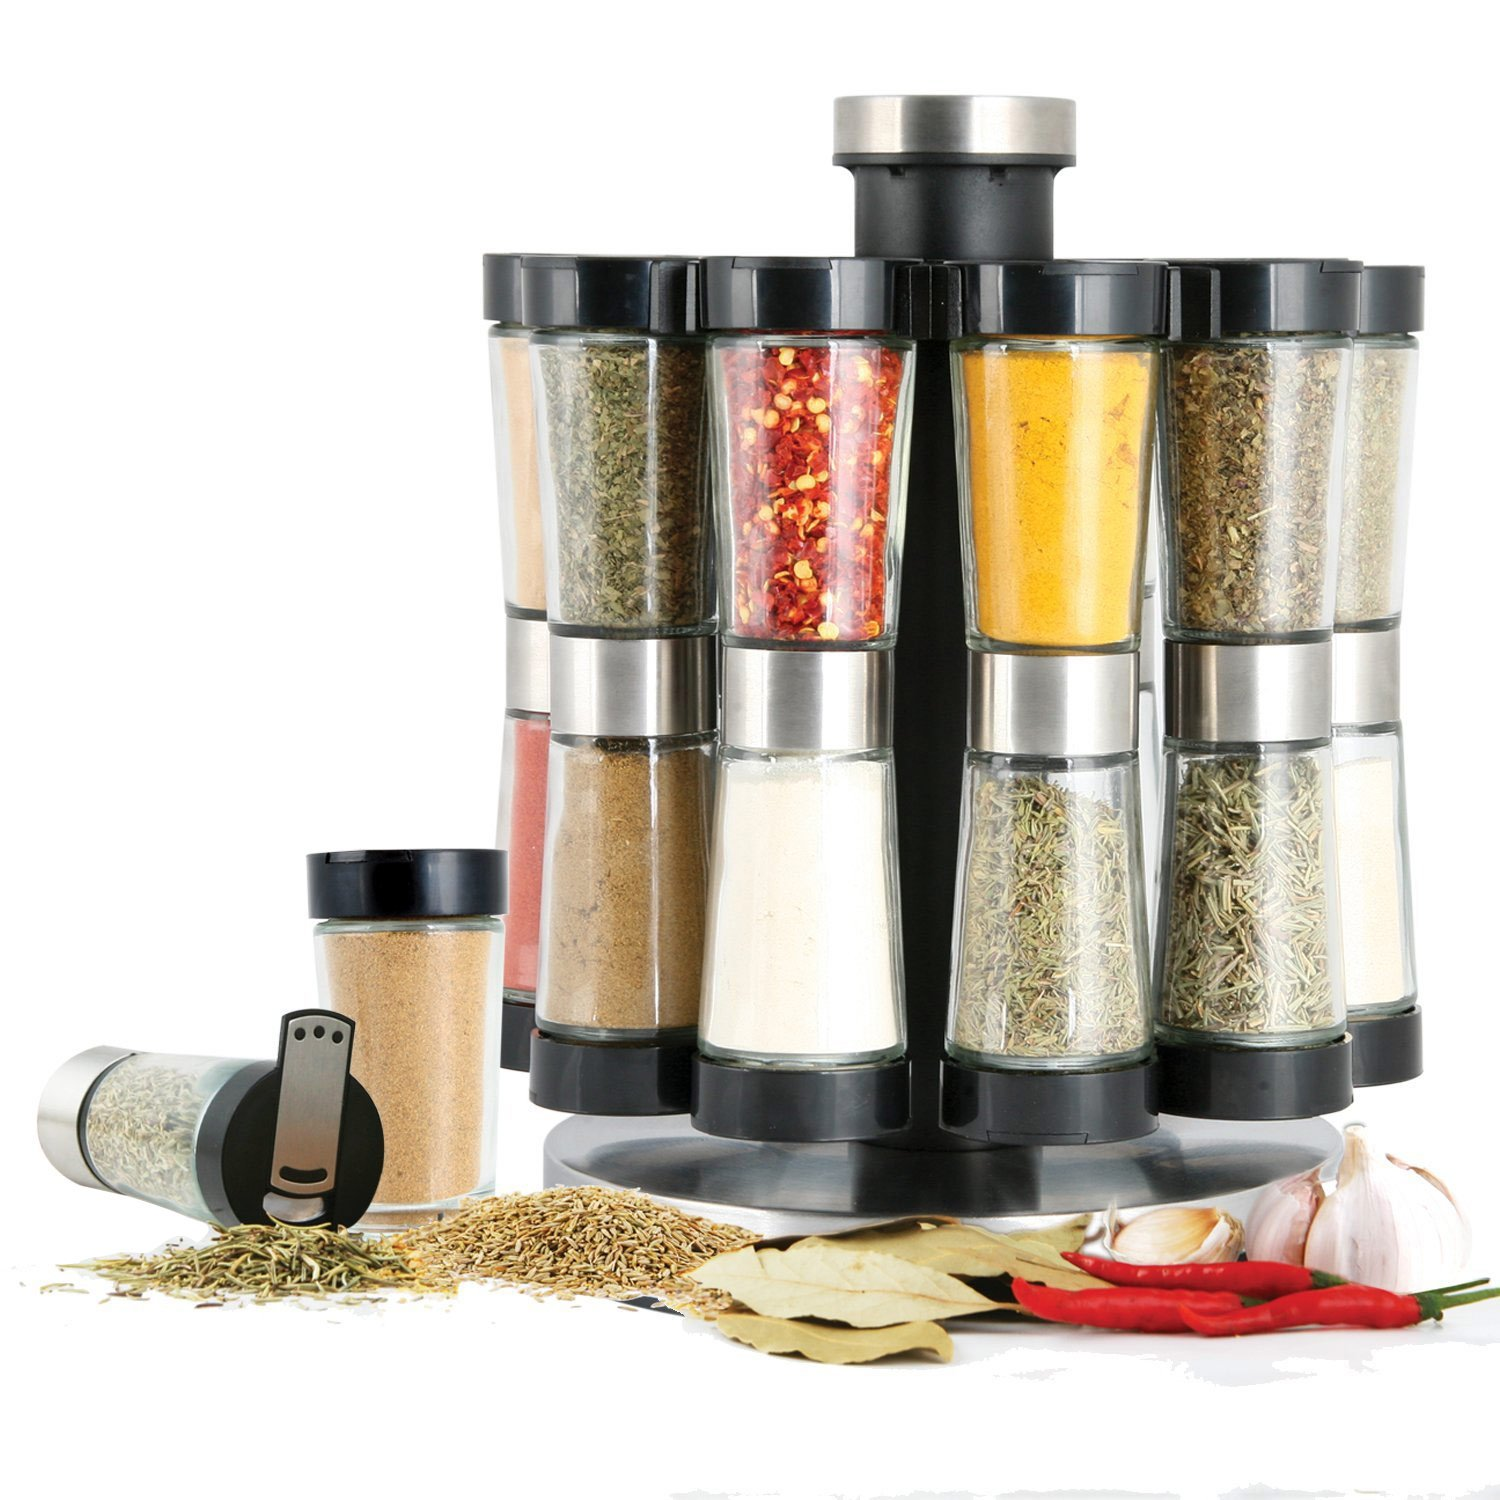 Orii GSR2520 Hourglass Kitchen Spice Rack, Silver